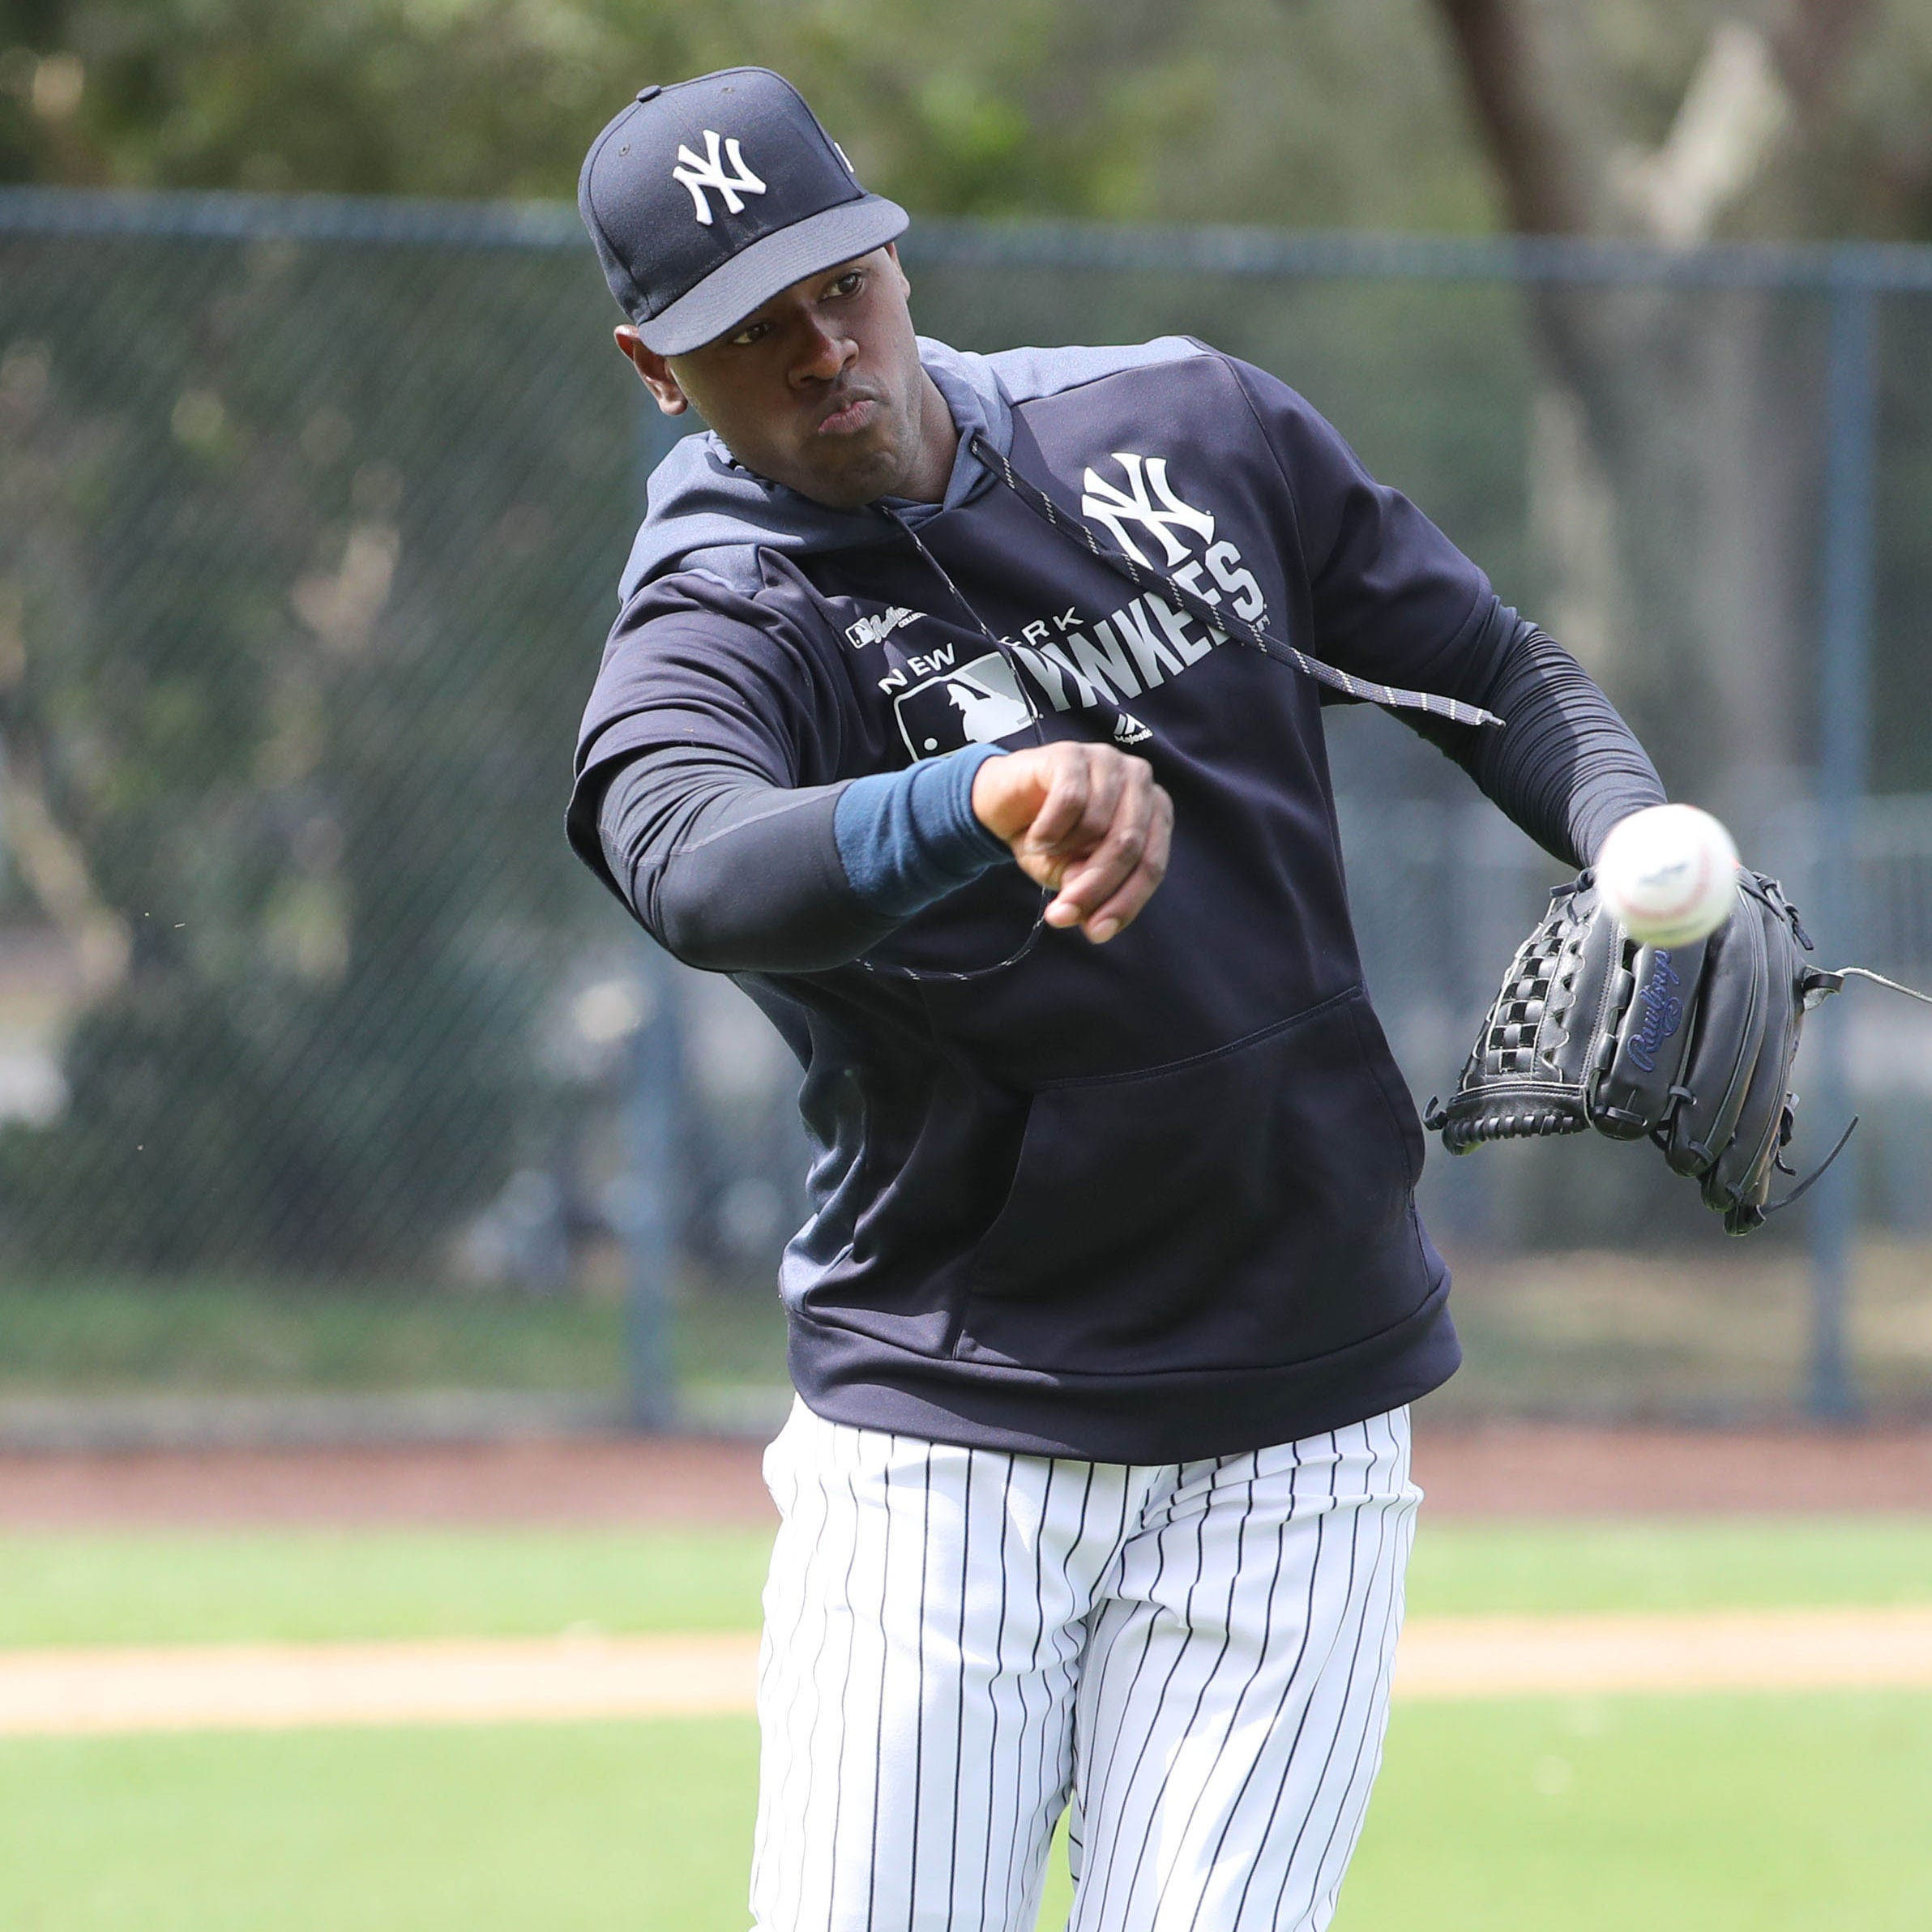 'Better now than later': Yankees' Luis Severino hopeful for quicker return this season